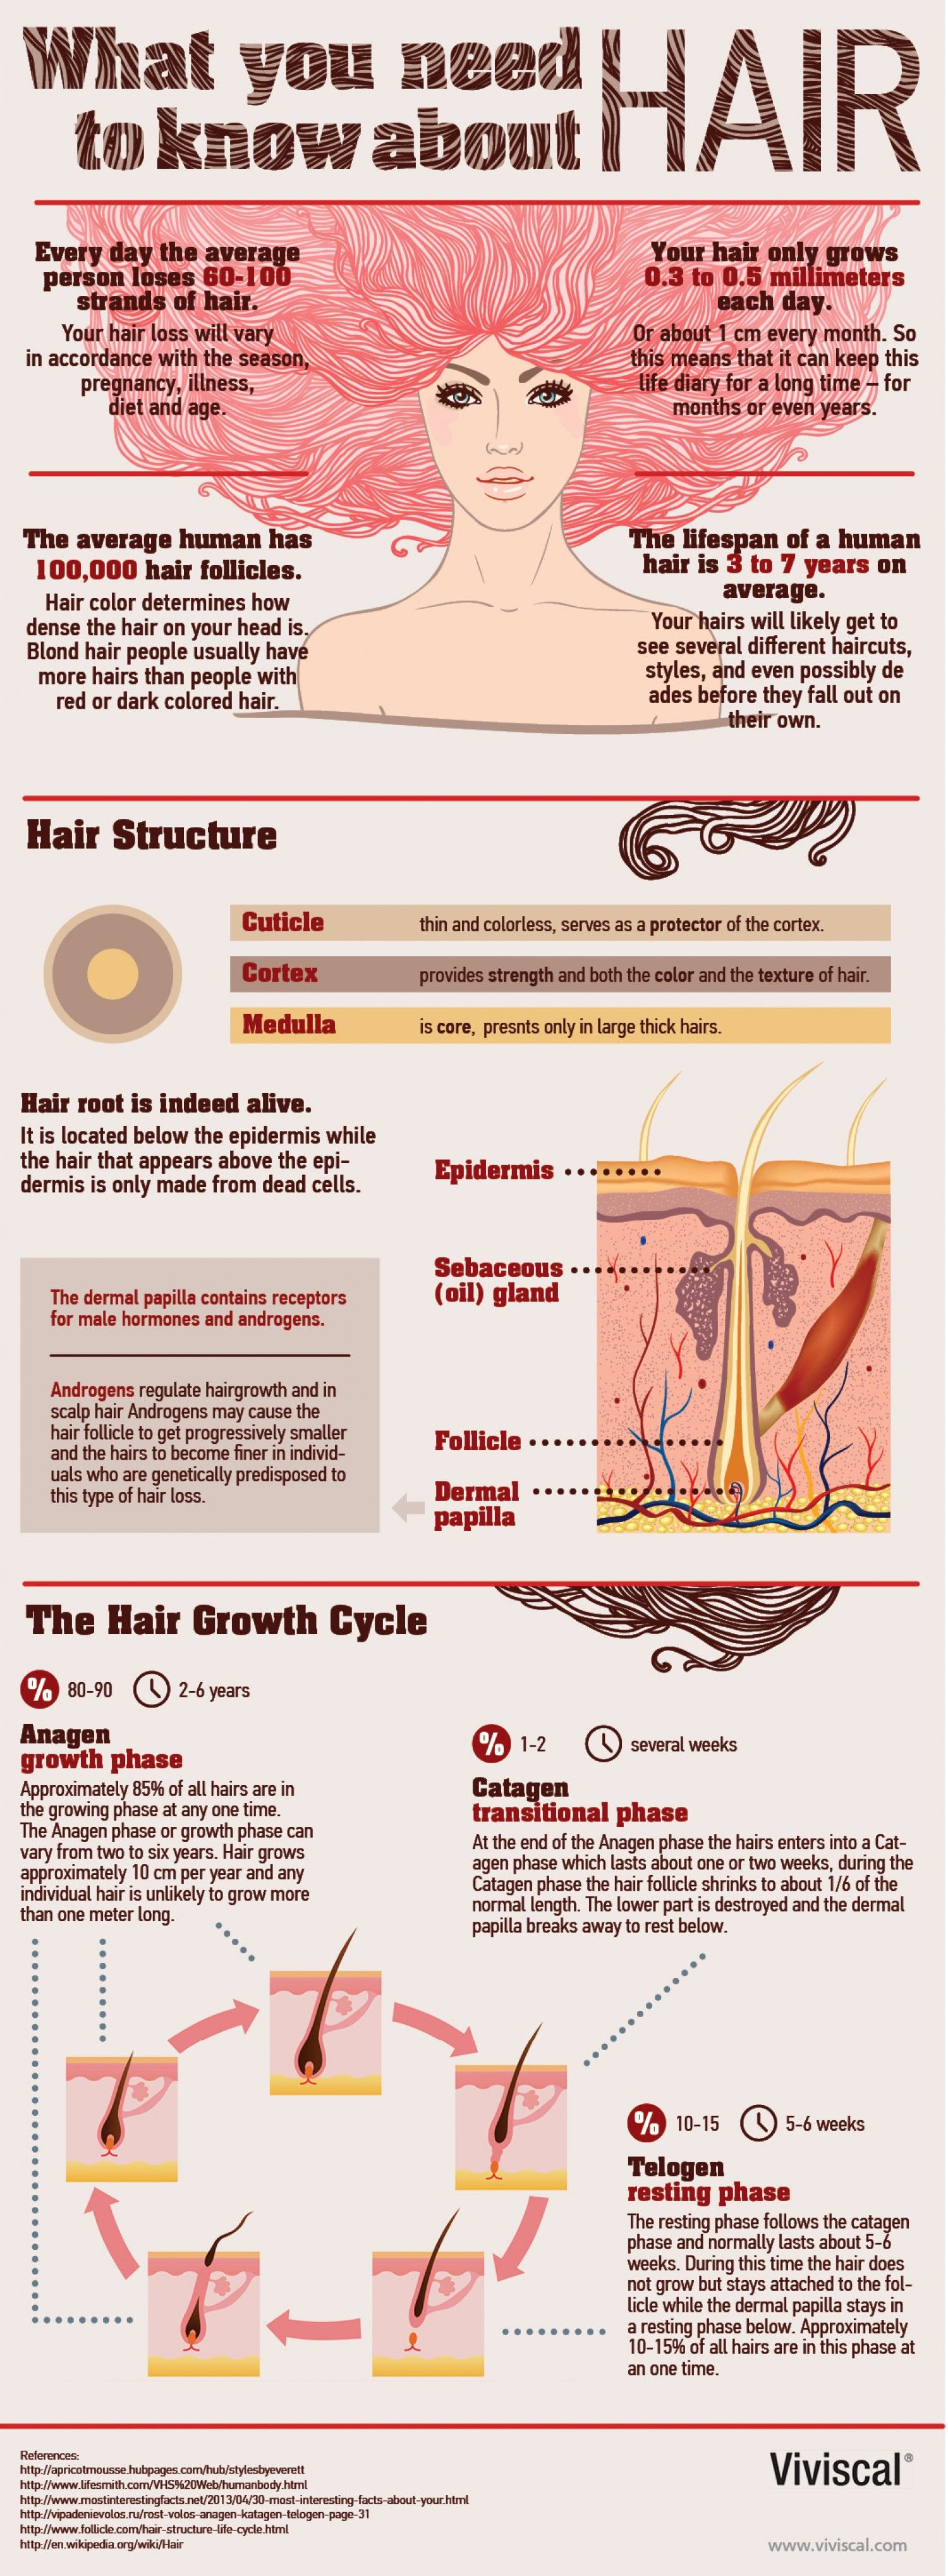 Elegant Chapter 11 Properties Of the Hair and Scalp